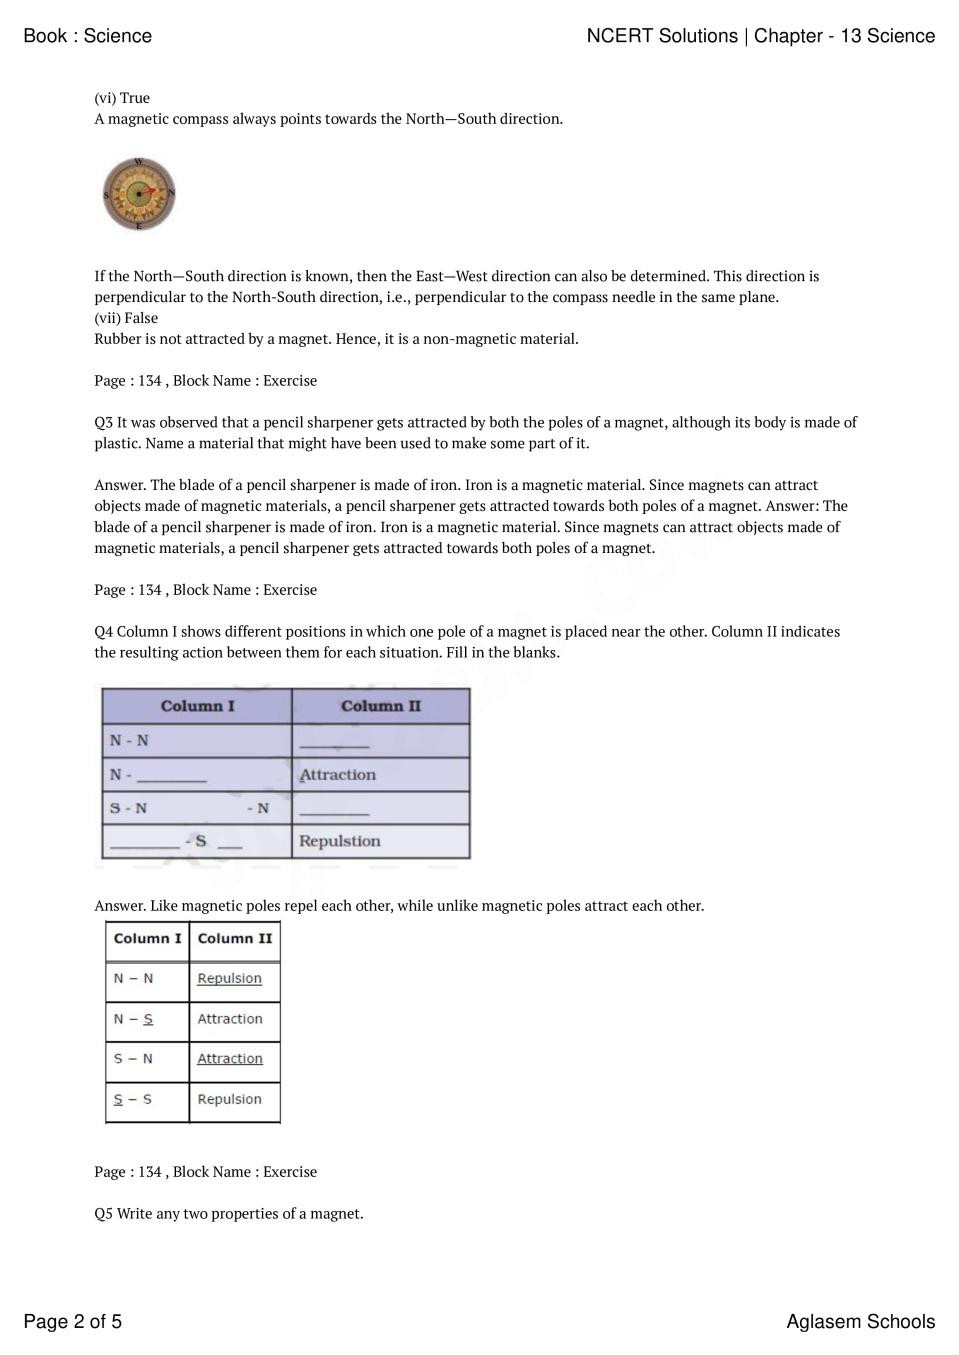 Magnetism Worksheet for High School Ncert solutions Class 6 Science Chapter 13 Fun with Magnets